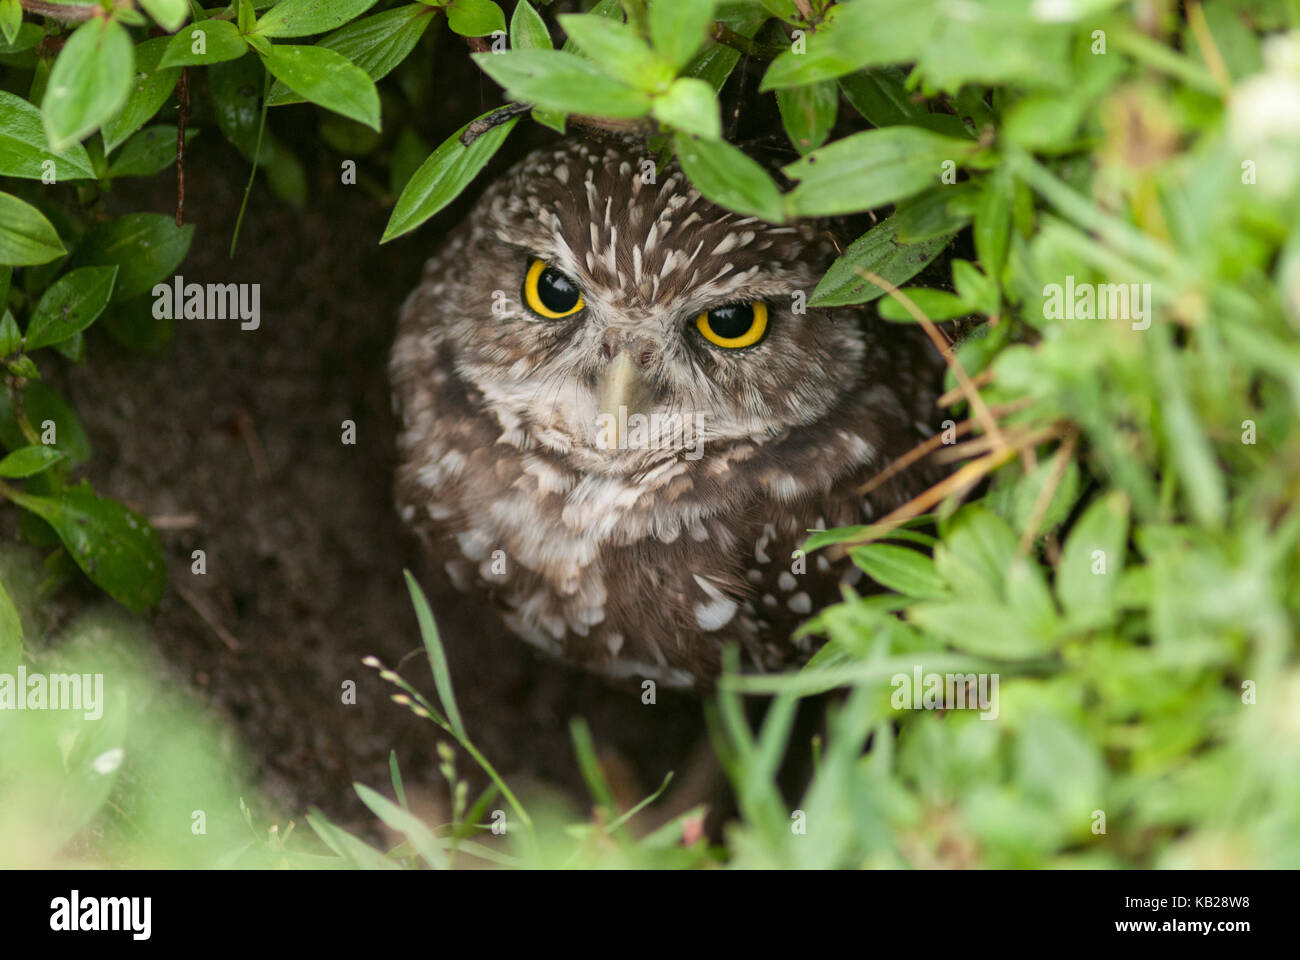 Burrowing owl looking out of its nest hole in a meadow. - Stock Image